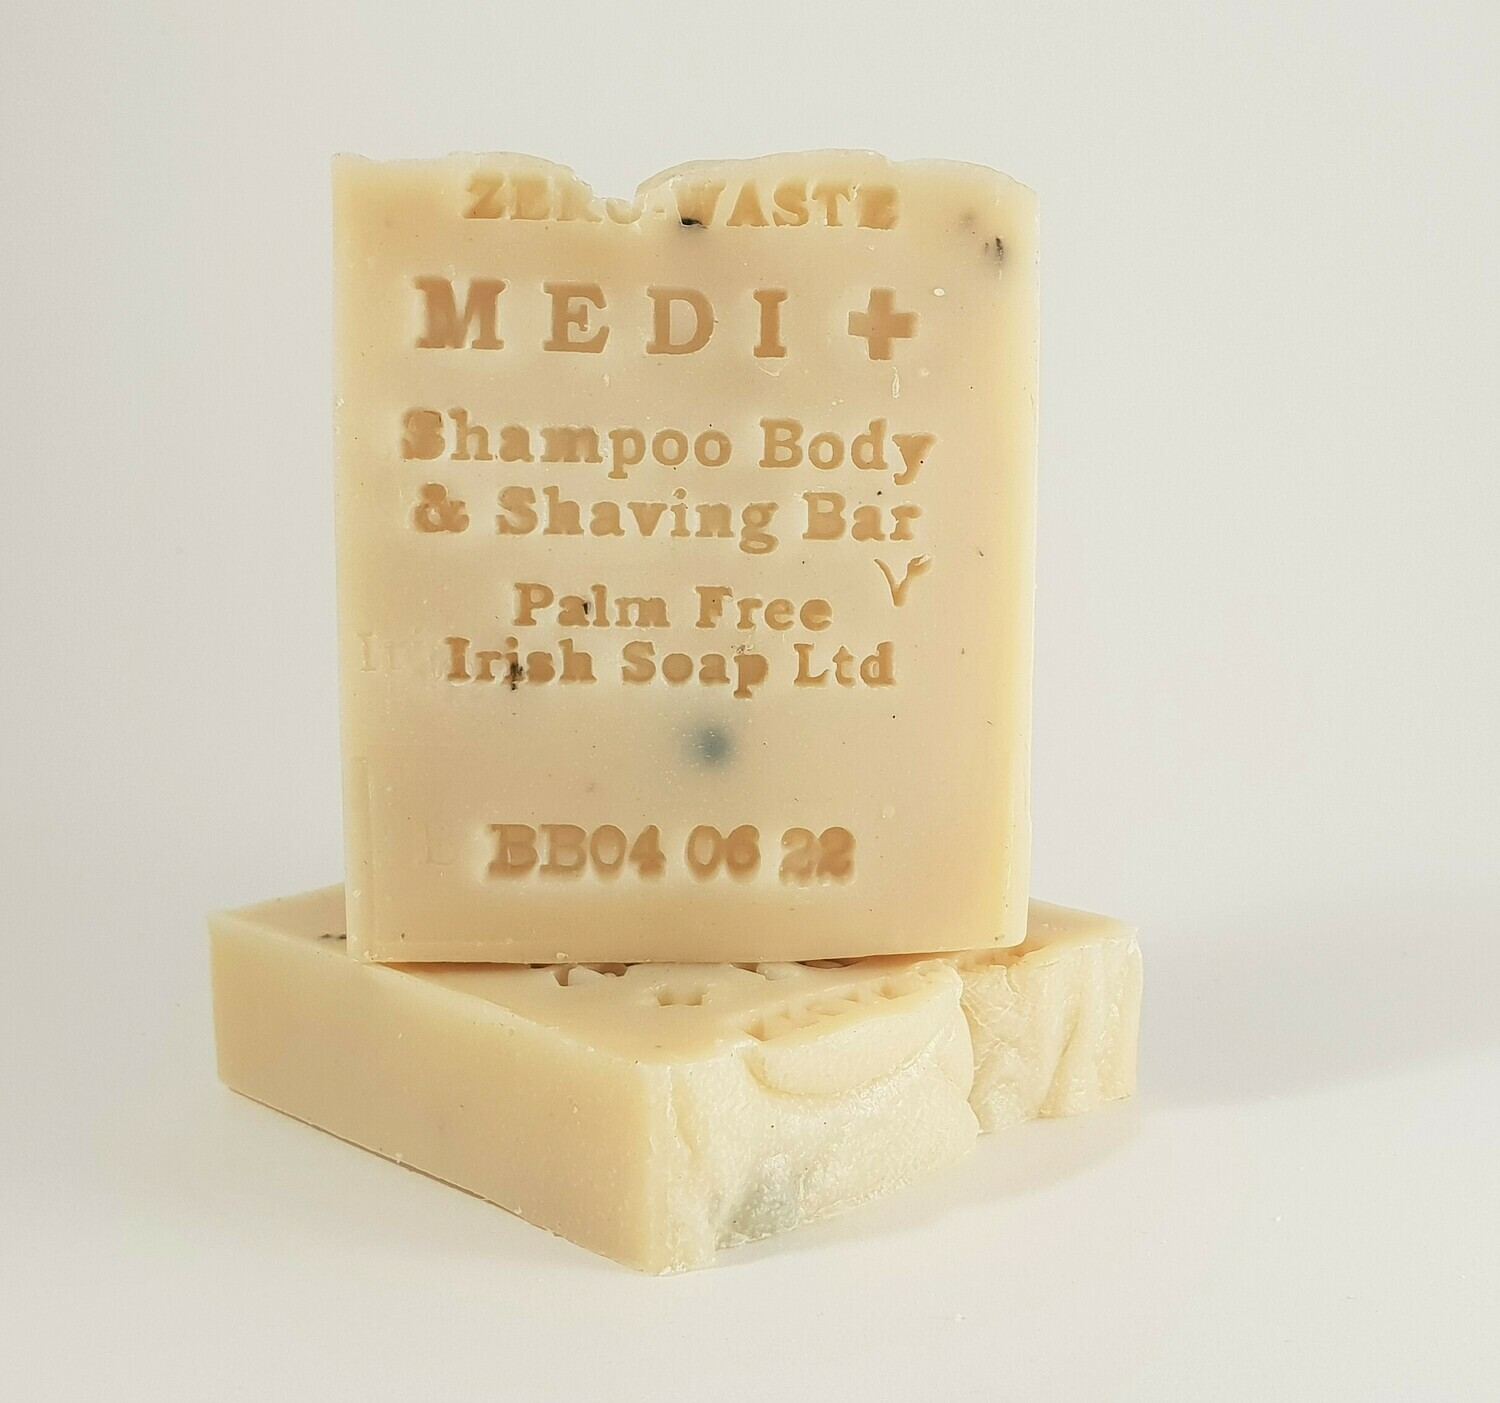 Palm Free Irish Medicated Shampoo, Body, Shaving Bar